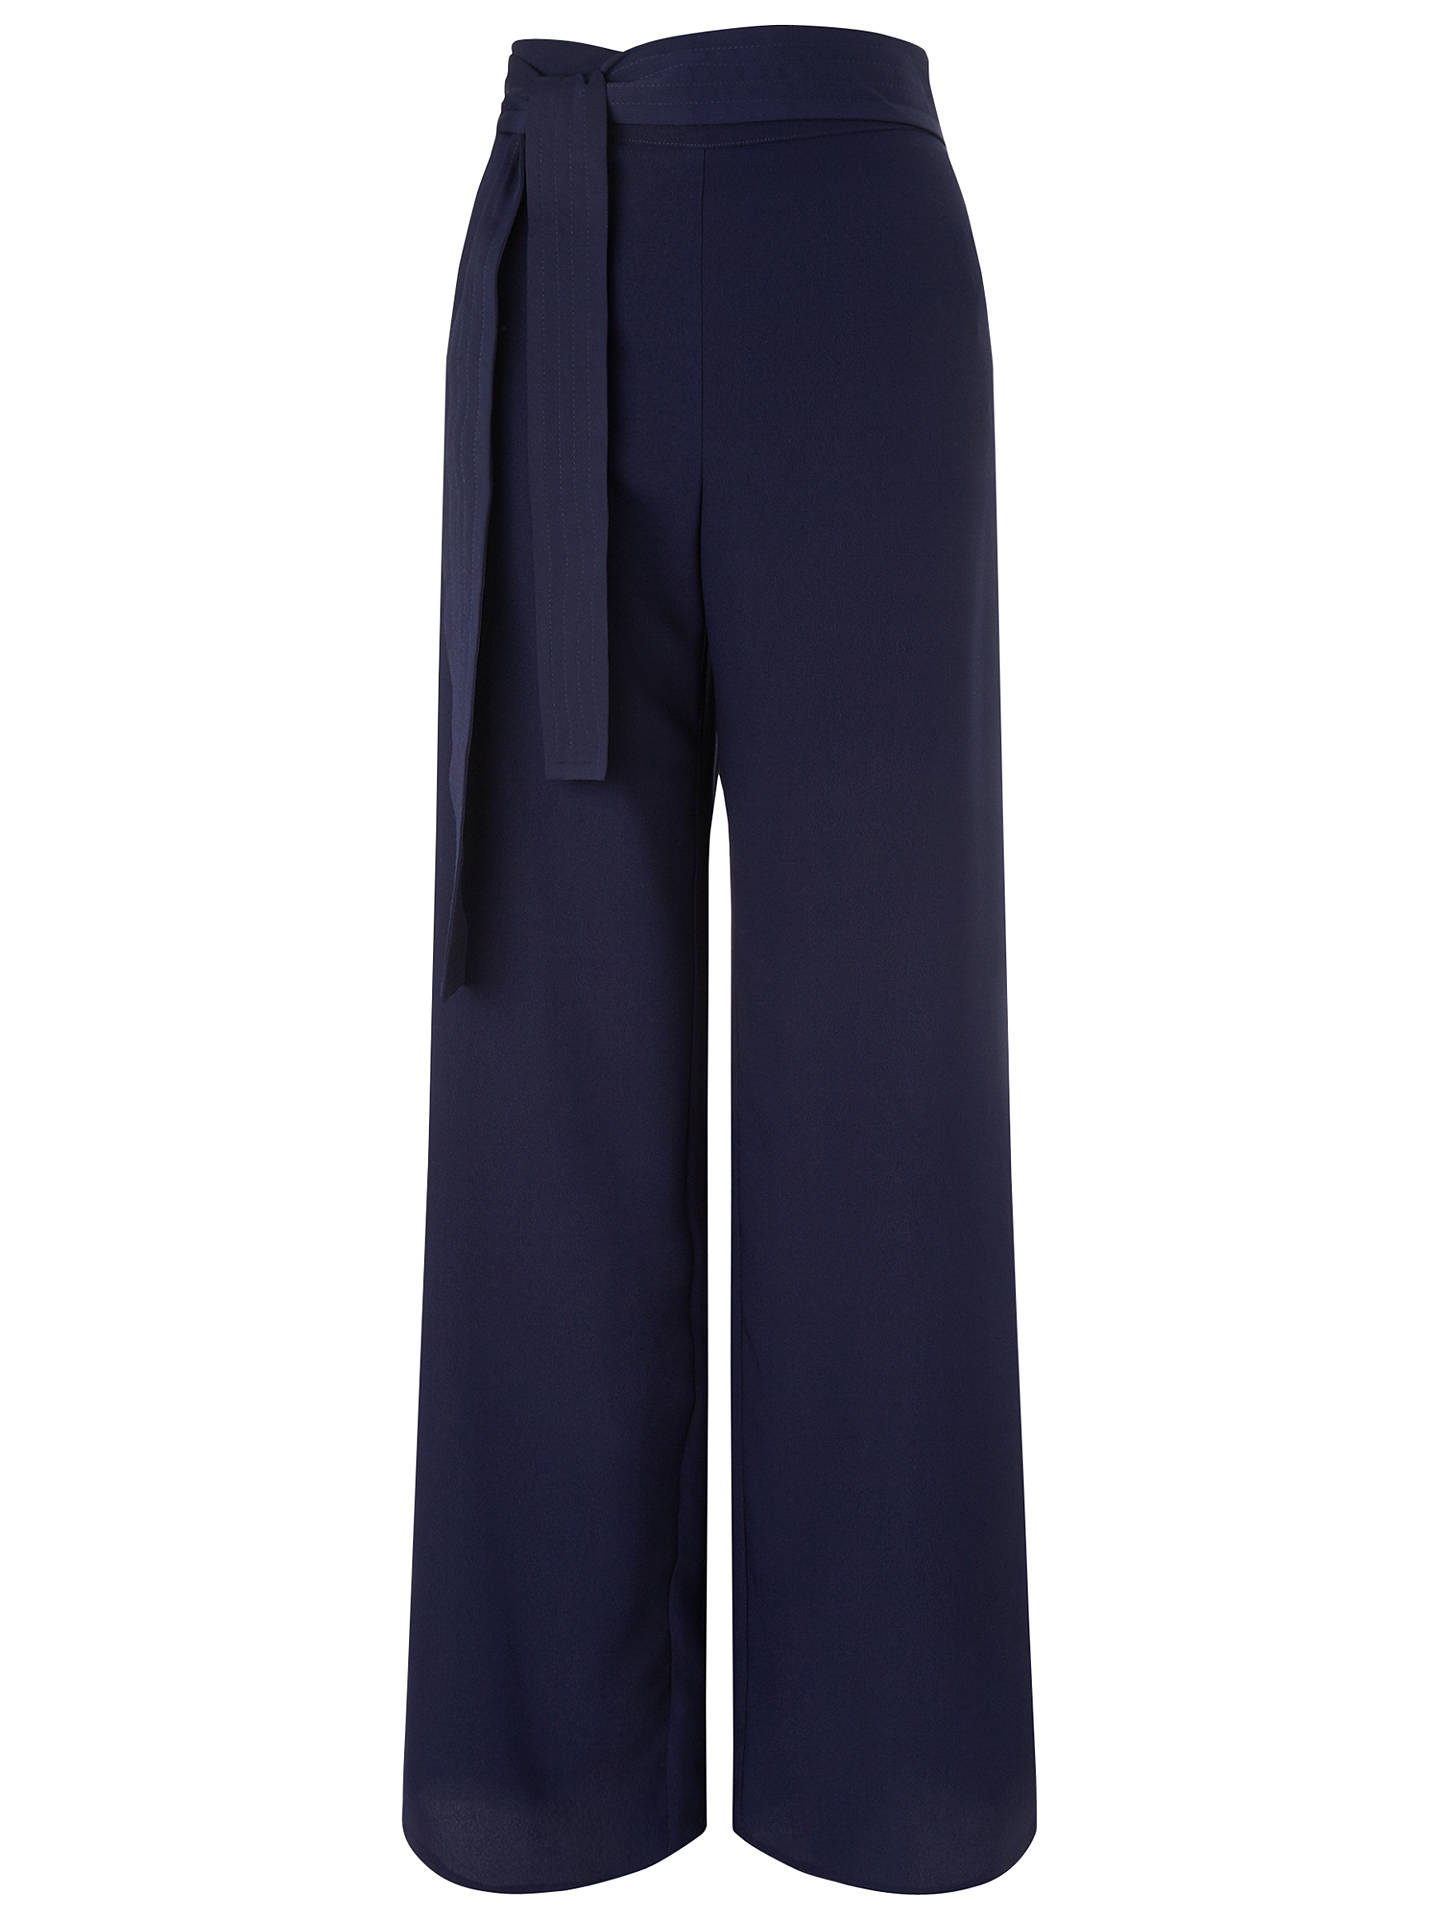 Buy Miss Selfridge Tie Waist Wide Leg Trousers, Navy, 6 Online at johnlewis.com